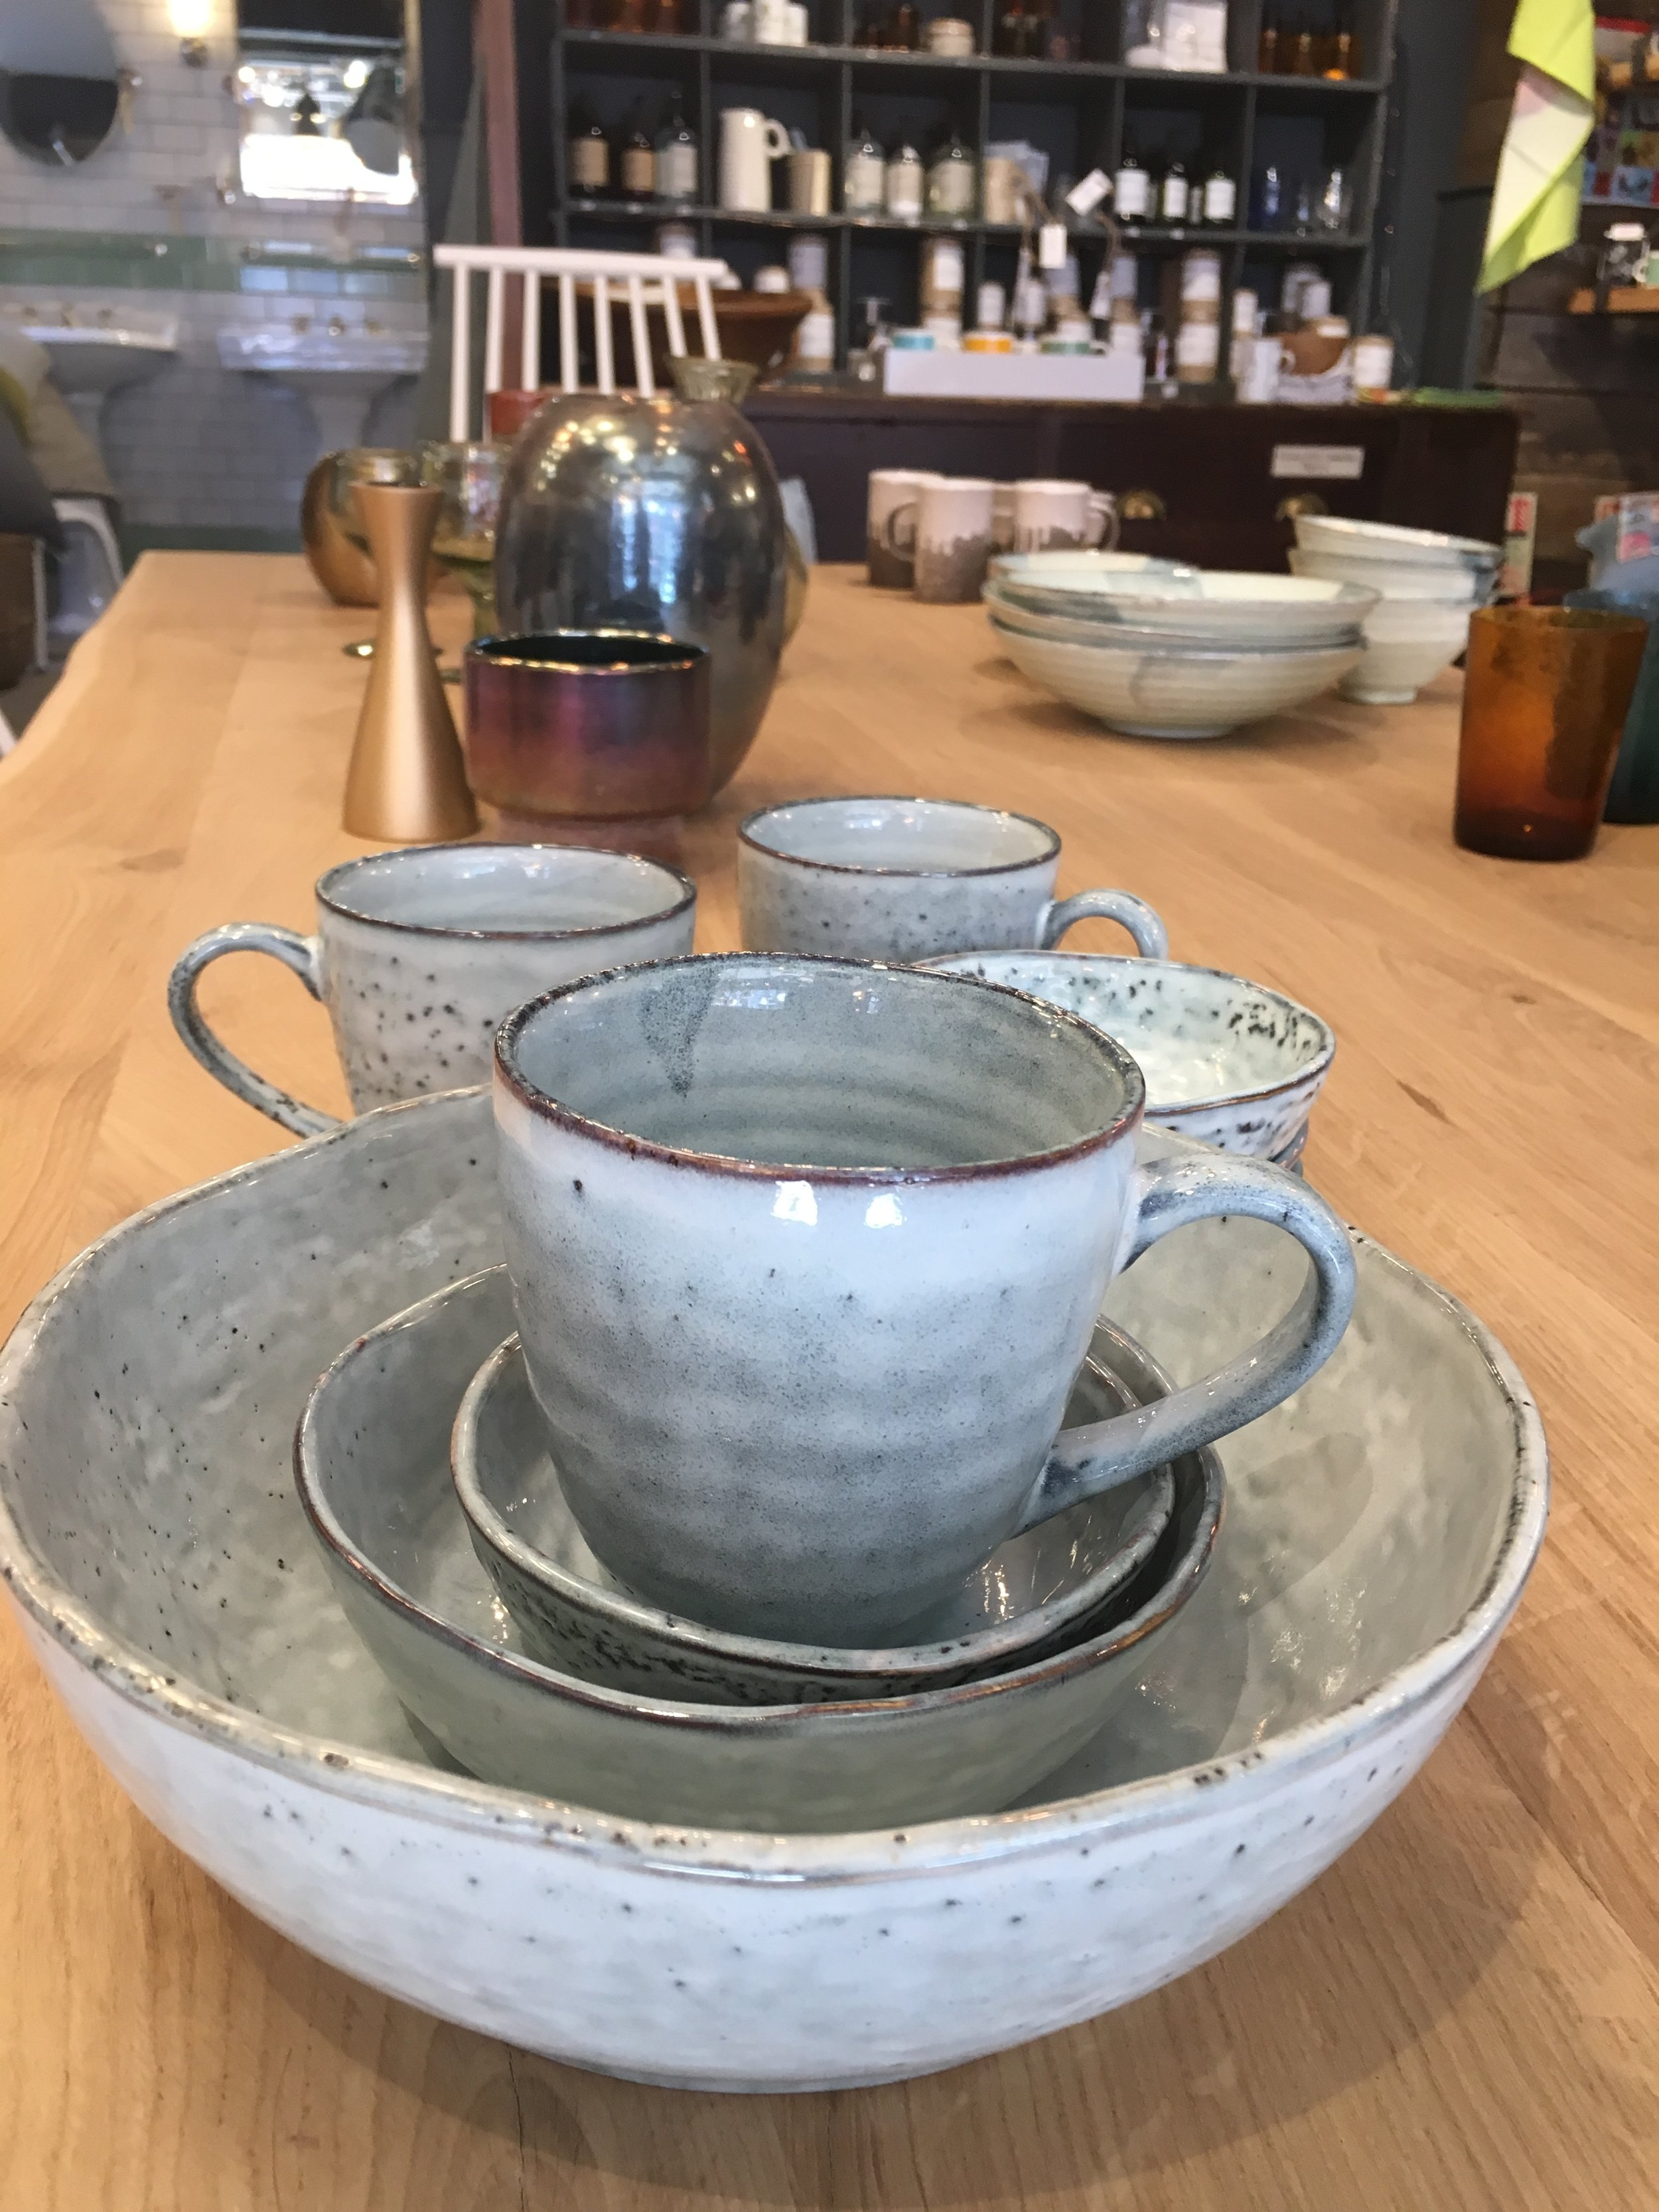 Holloways Period Shop - Change up your housewares with these pottery beauties by House Doctors in Danish GreyLarge bowl £21; medium £6; small £4.50. Cups £6